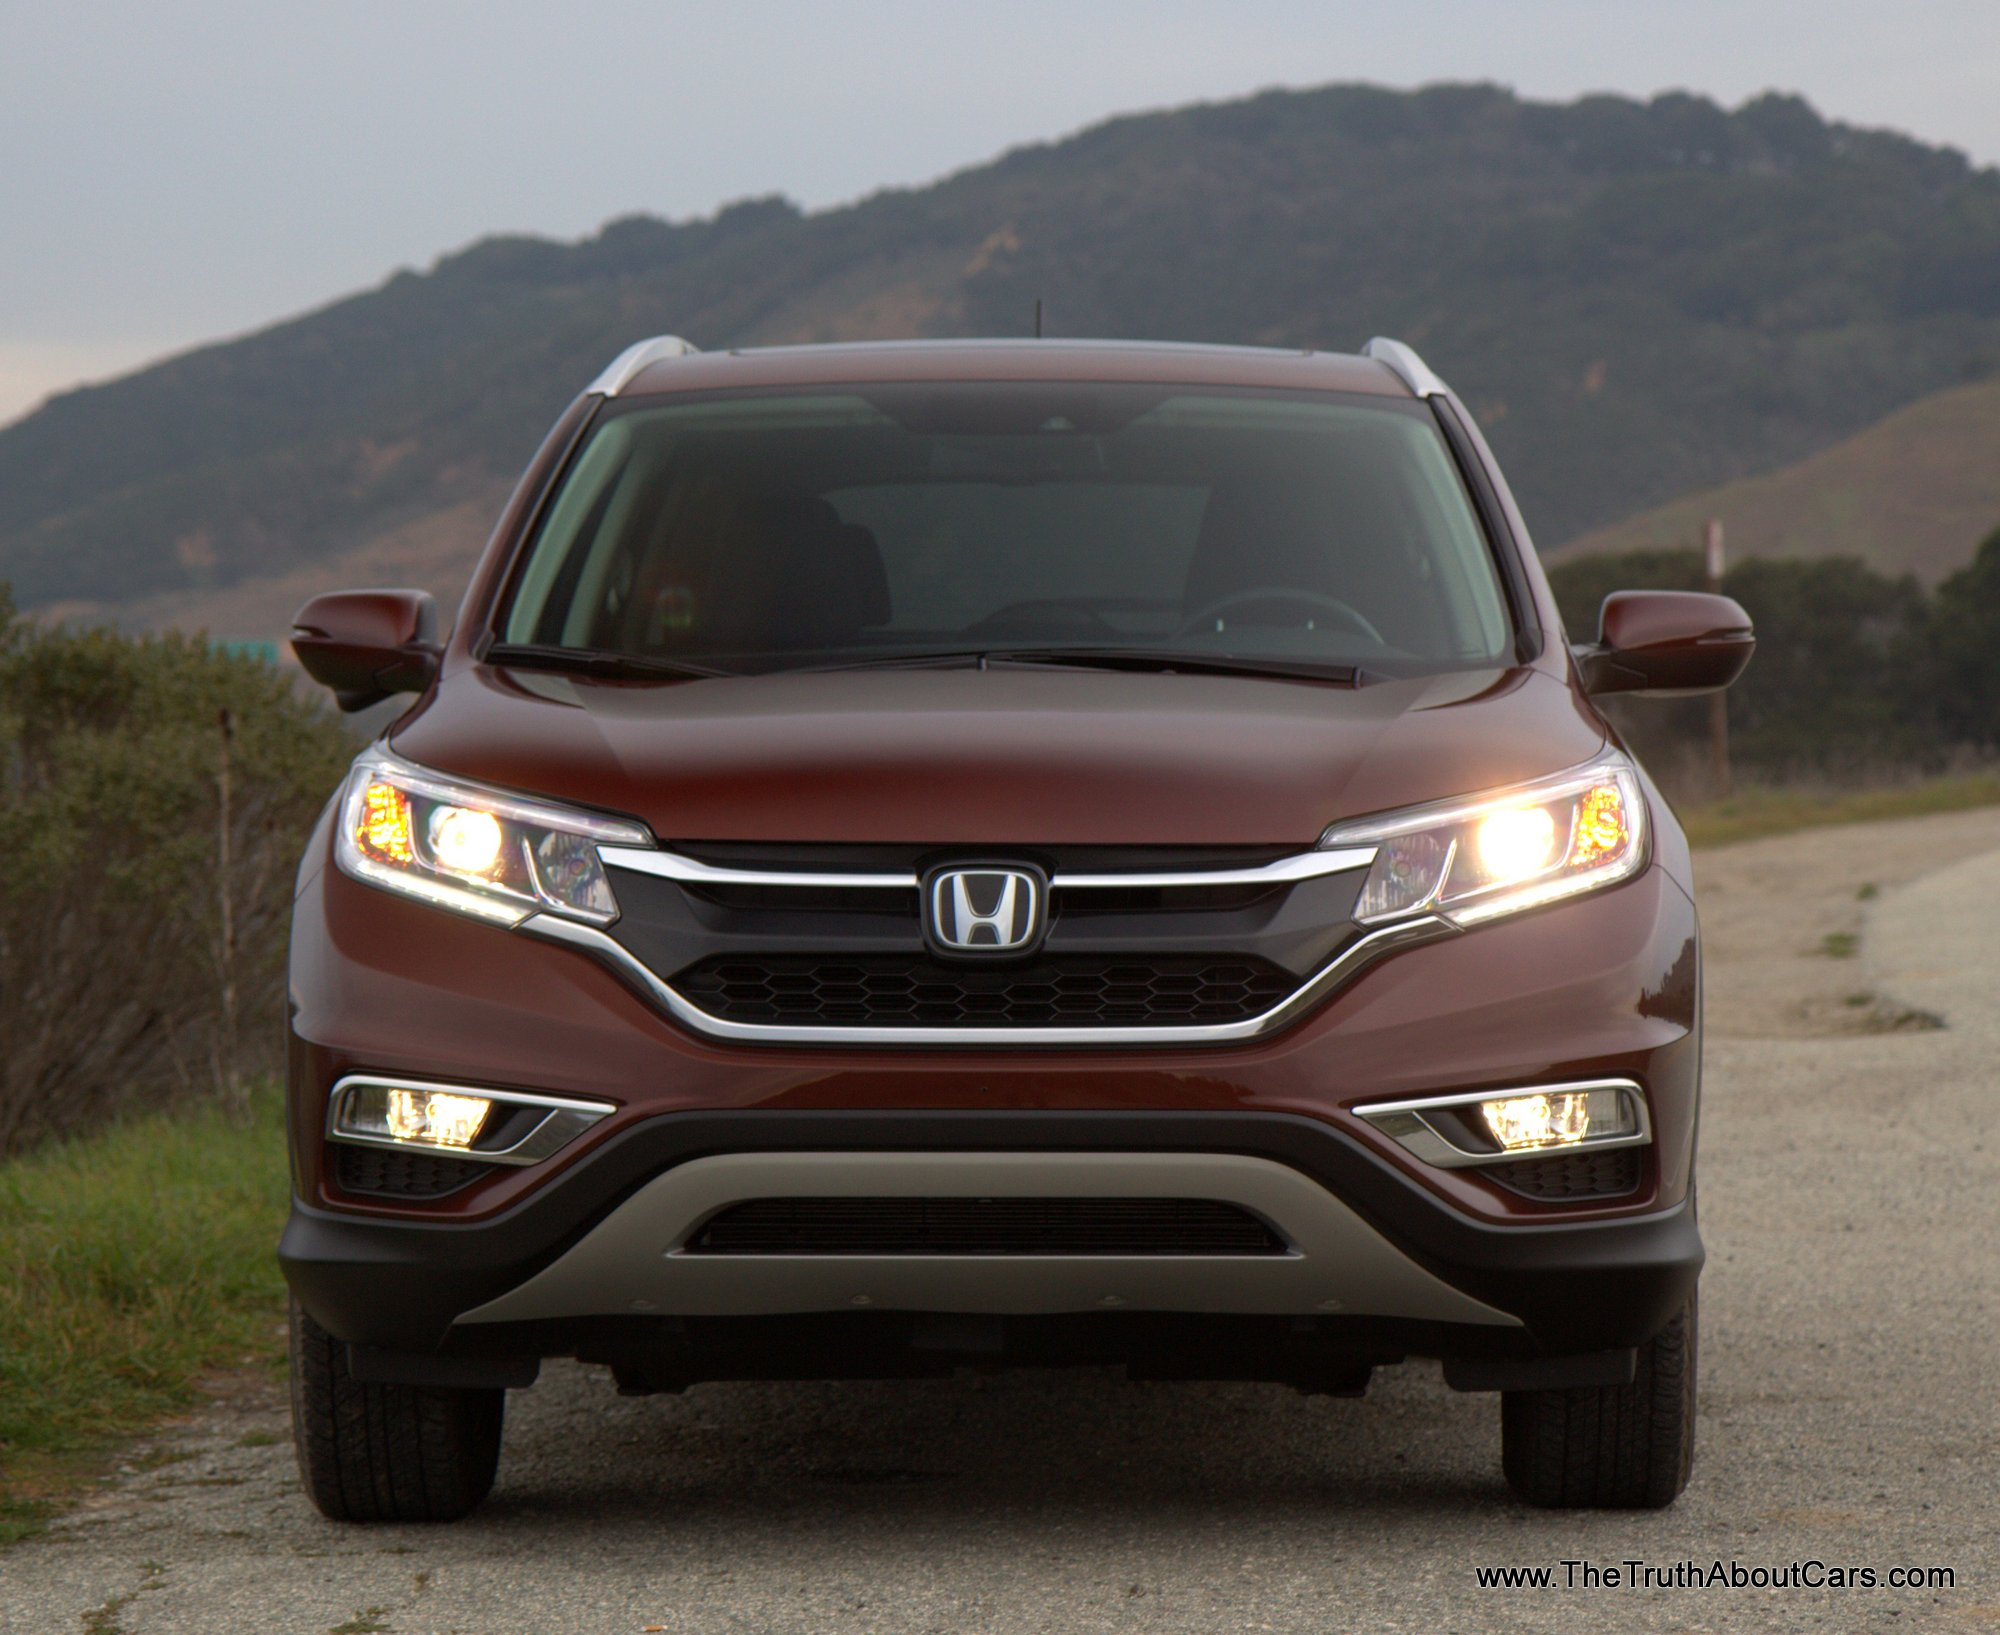 cr lallier image awd pre honda in lx gatineau inventory used owned v on en hull the zoom